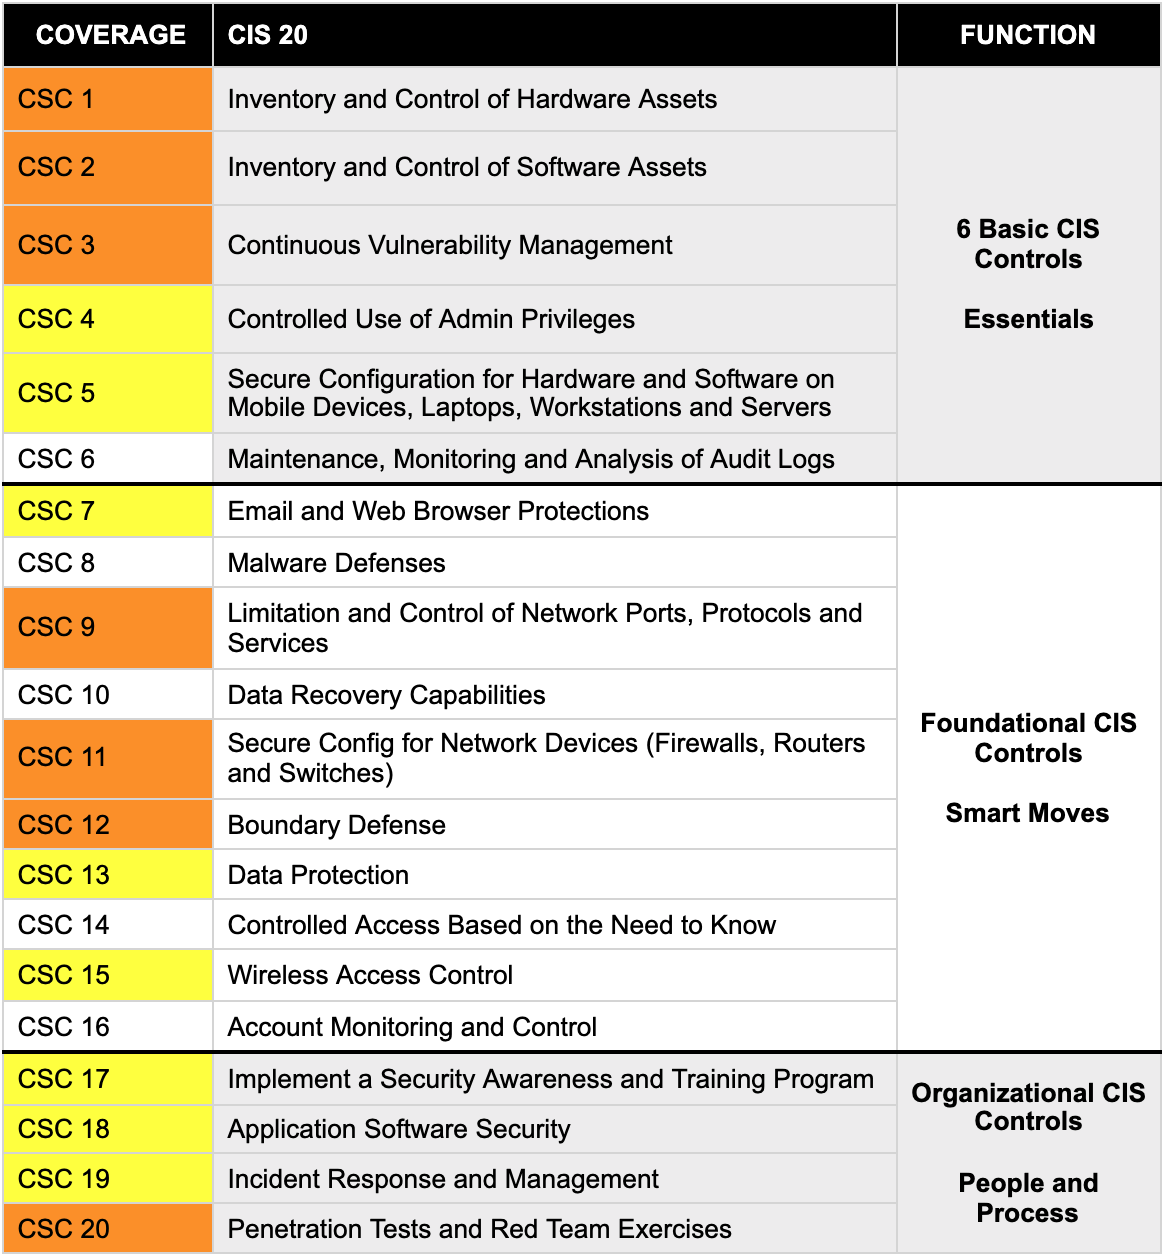 Center for Internet Security Critical Security Controls (CIS CSC)